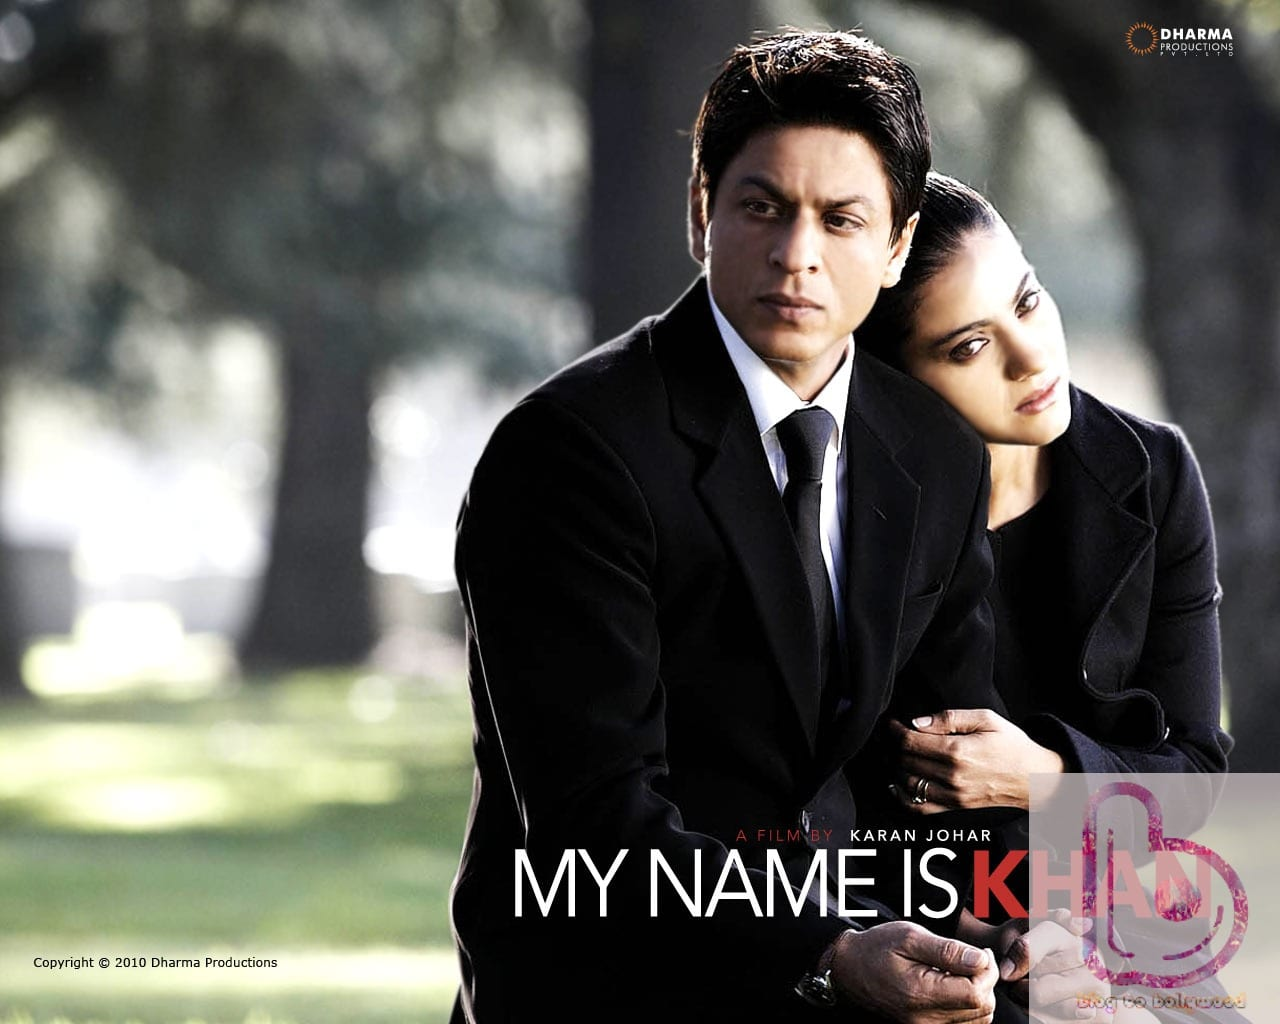 SRK's best performance till date - My Name is Khan